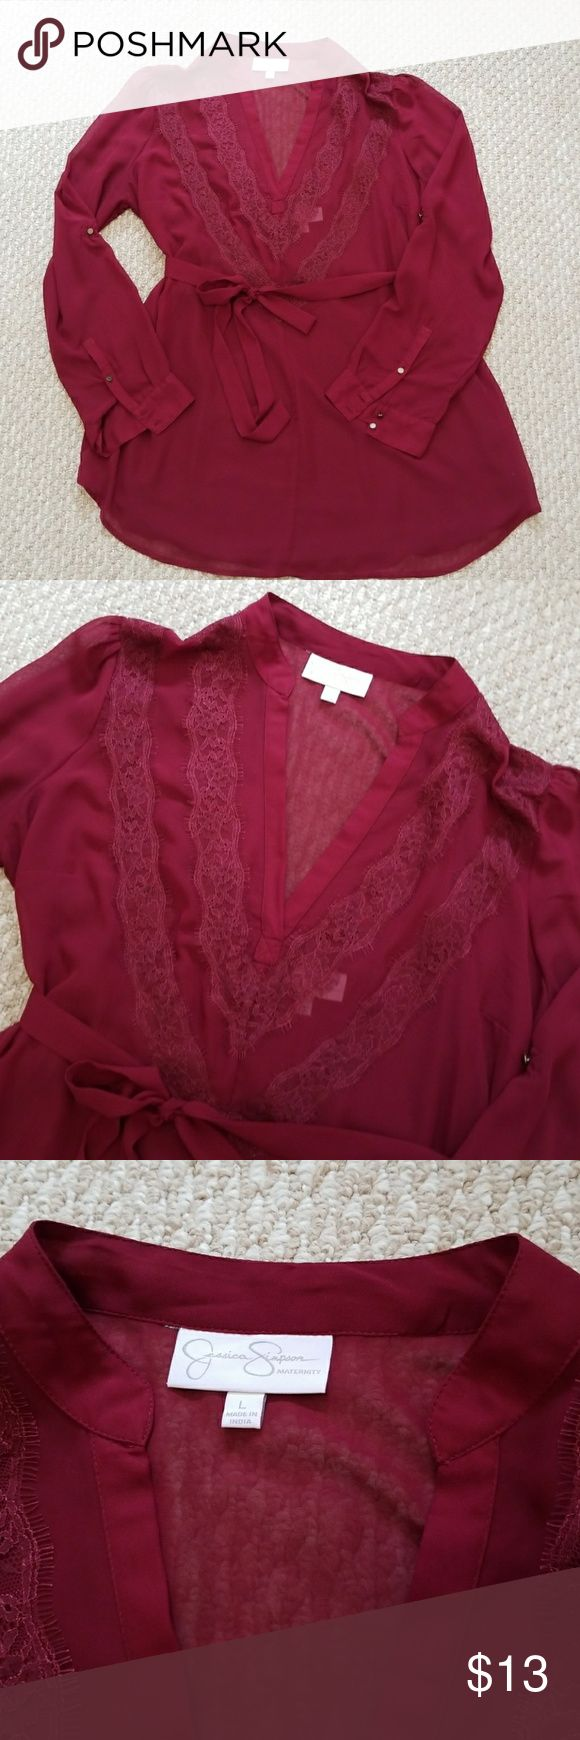 Jessica Simpson Maternity Blouse Jessica Simpson Maternity Blouse, great used condition, camisole has snap attach option at the shoulder, smoke free pet free home. Jessica Simpson Tops Blouses